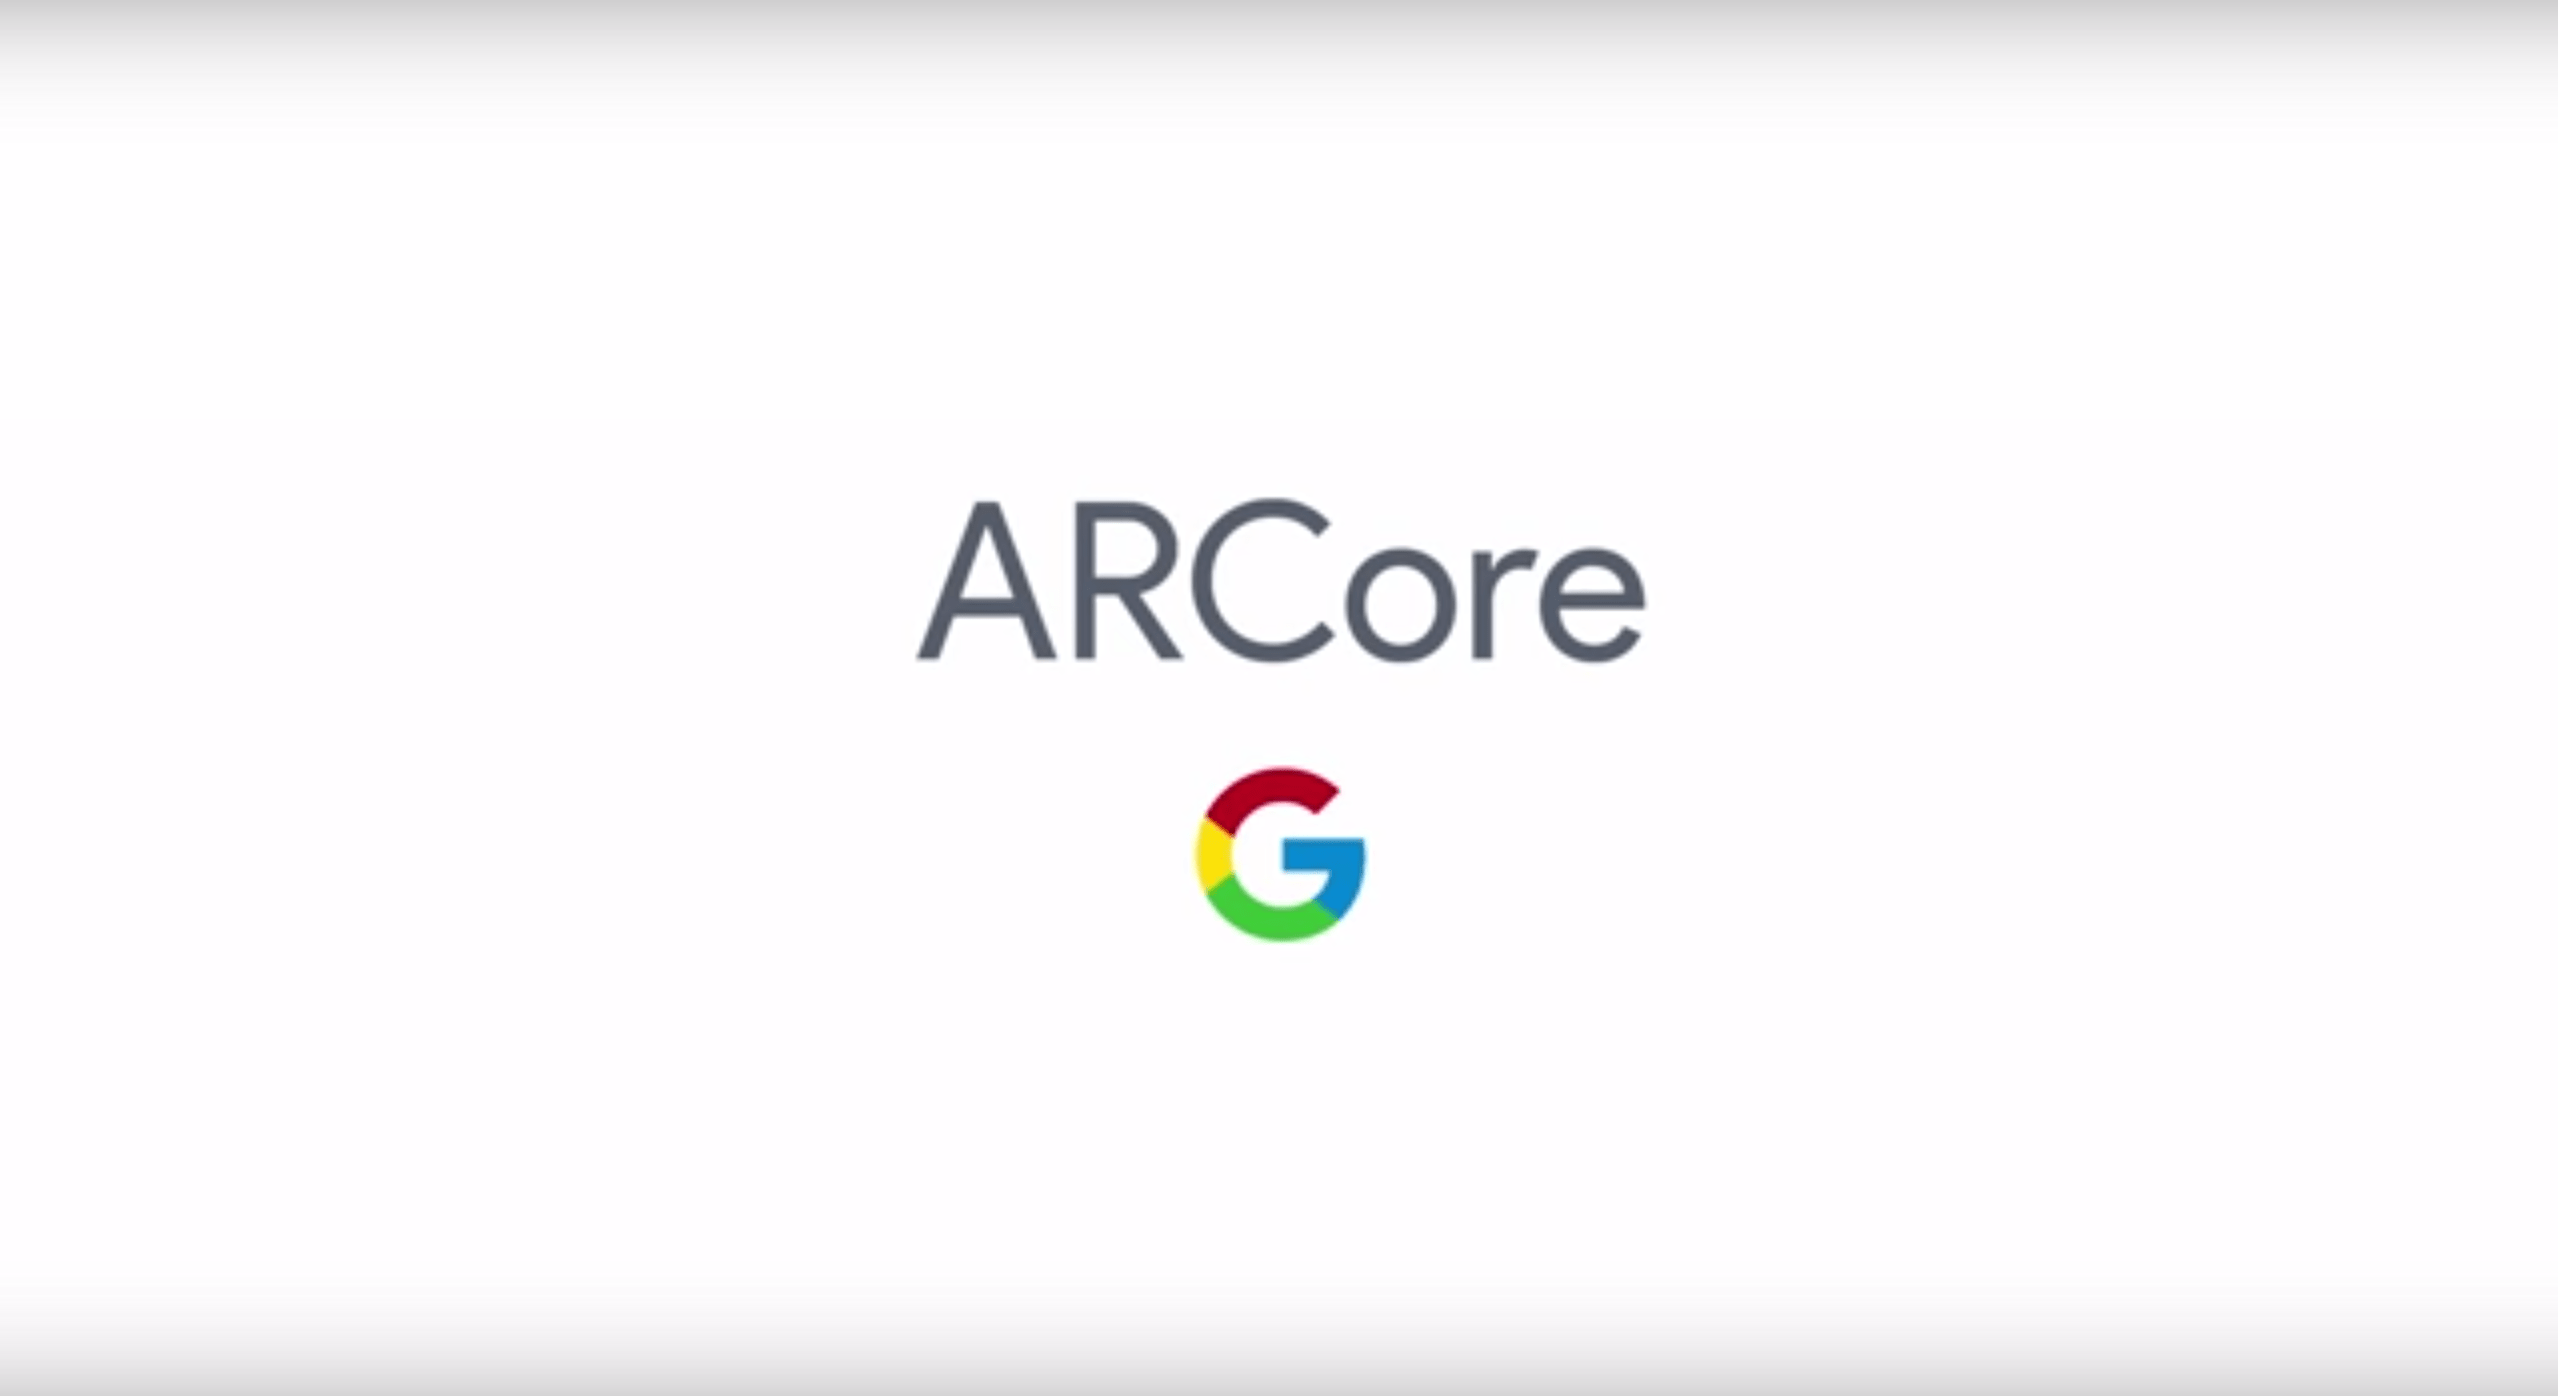 Google Focuses on ARCore, Announces Death of Tango